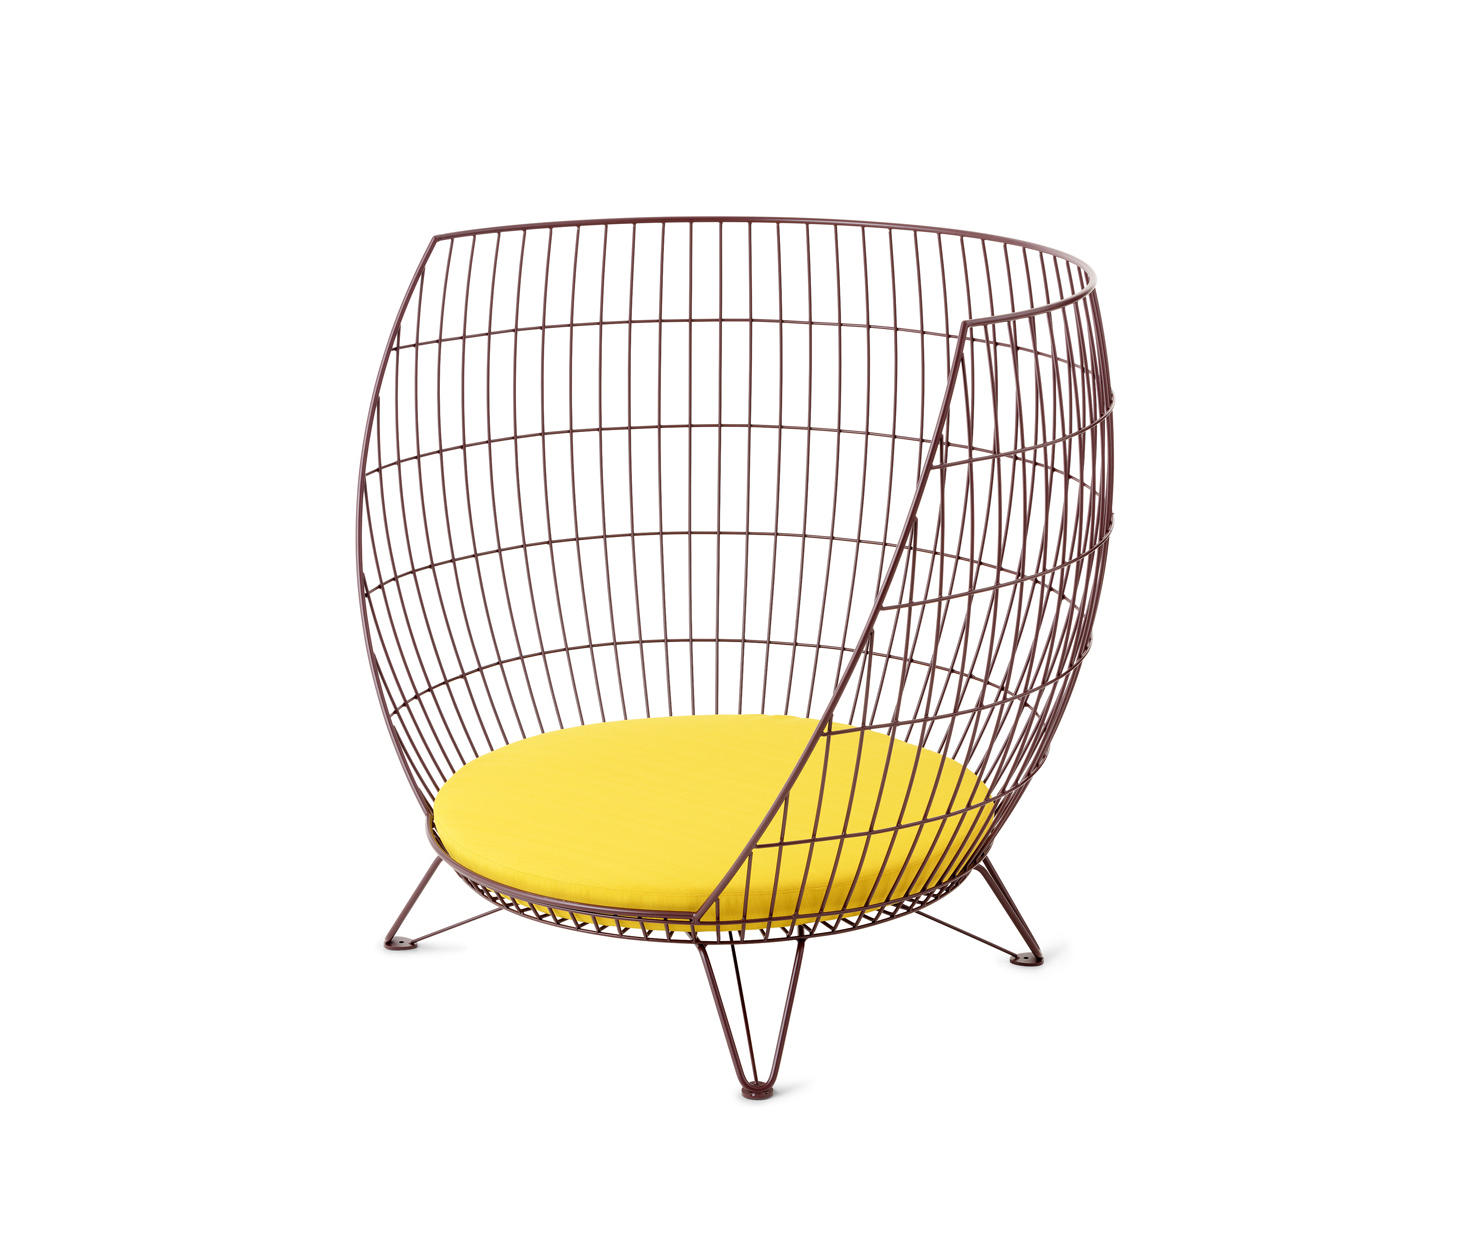 Sessel Nola Basket Armchair Big Sessel Von Nola Architonic